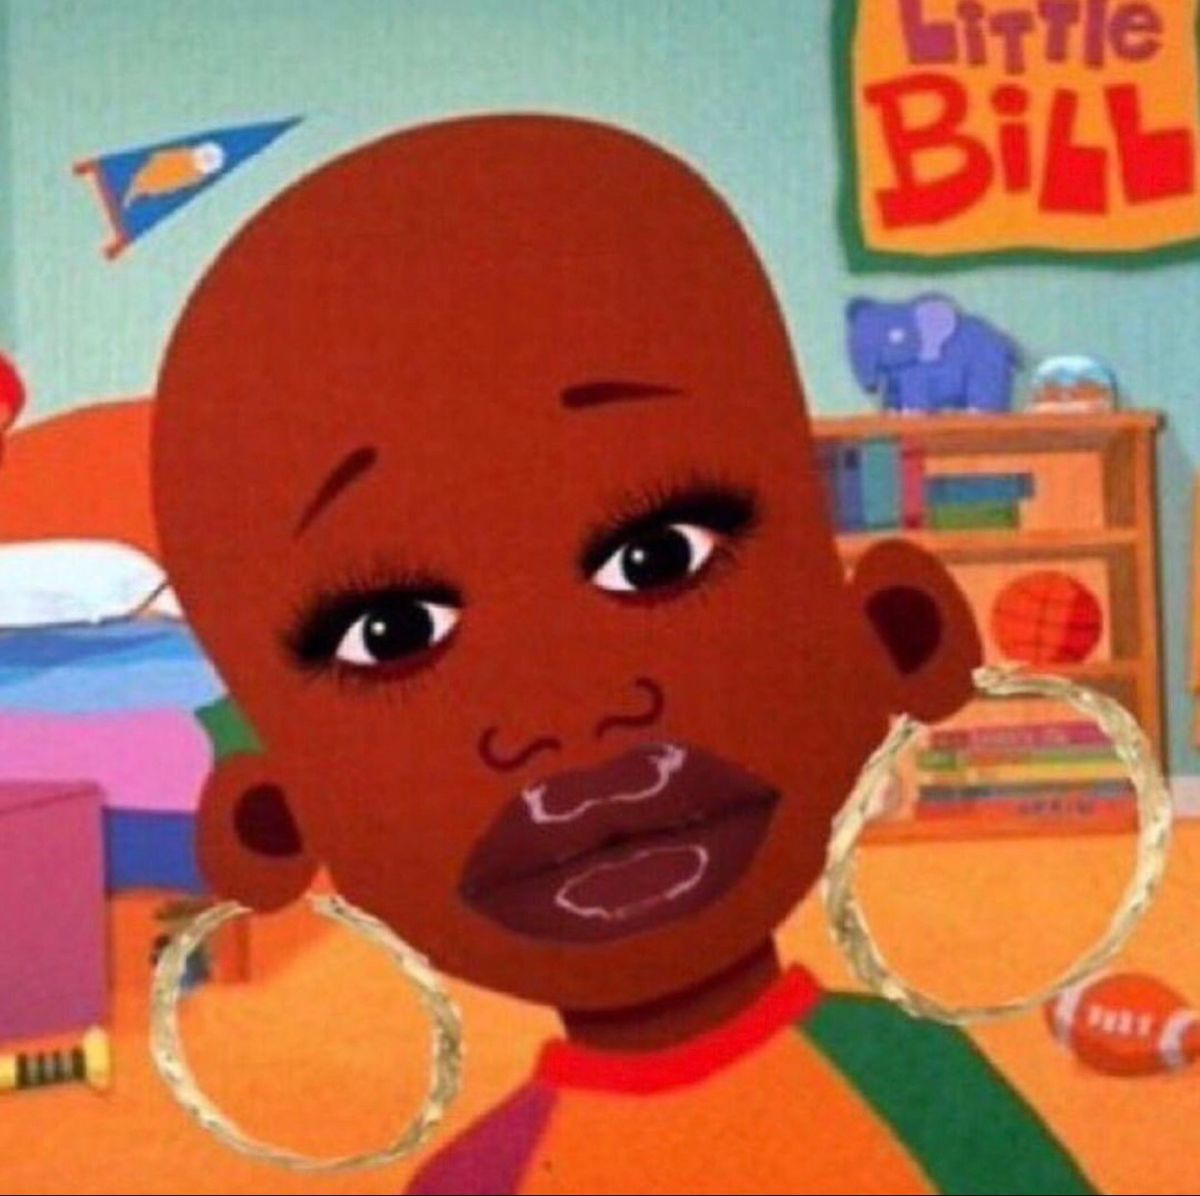 Little Bill In 2020 Funny Memes Images Funny Profile Pictures Funny Profile